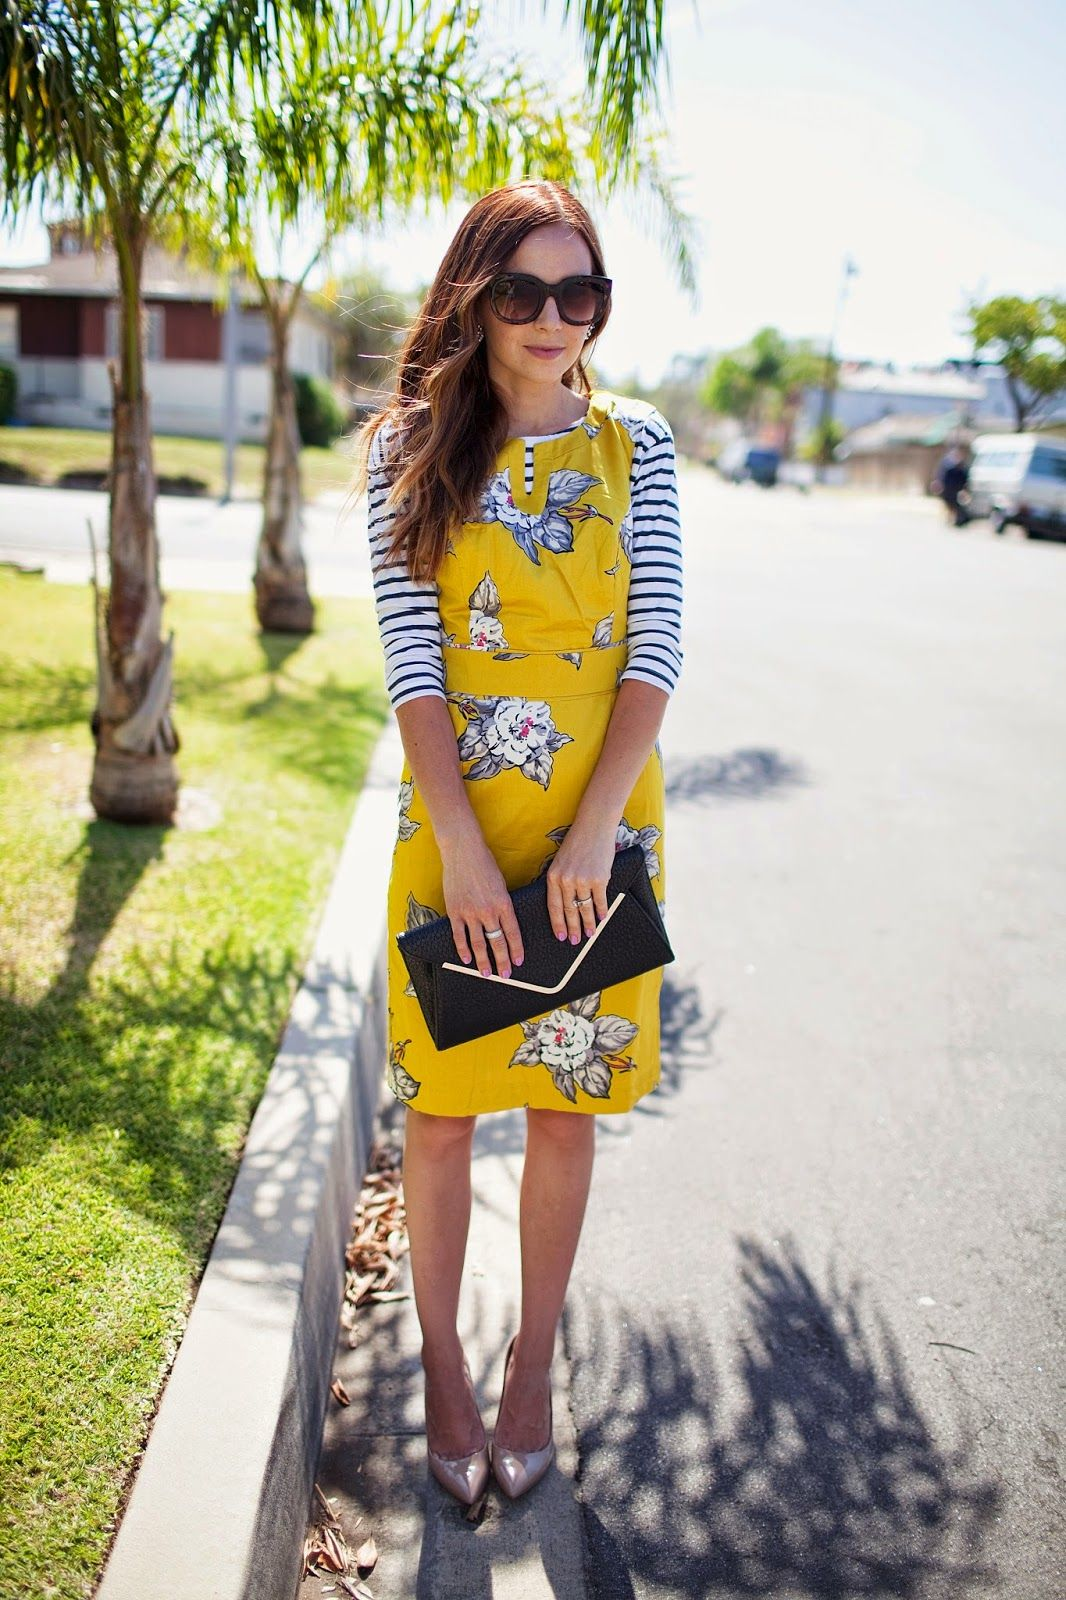 de45d03ac33 A chilly spring day calls for cute layered pieces. Pair your favorite  yellow sundress with a black and white sleeve for some cozy style.